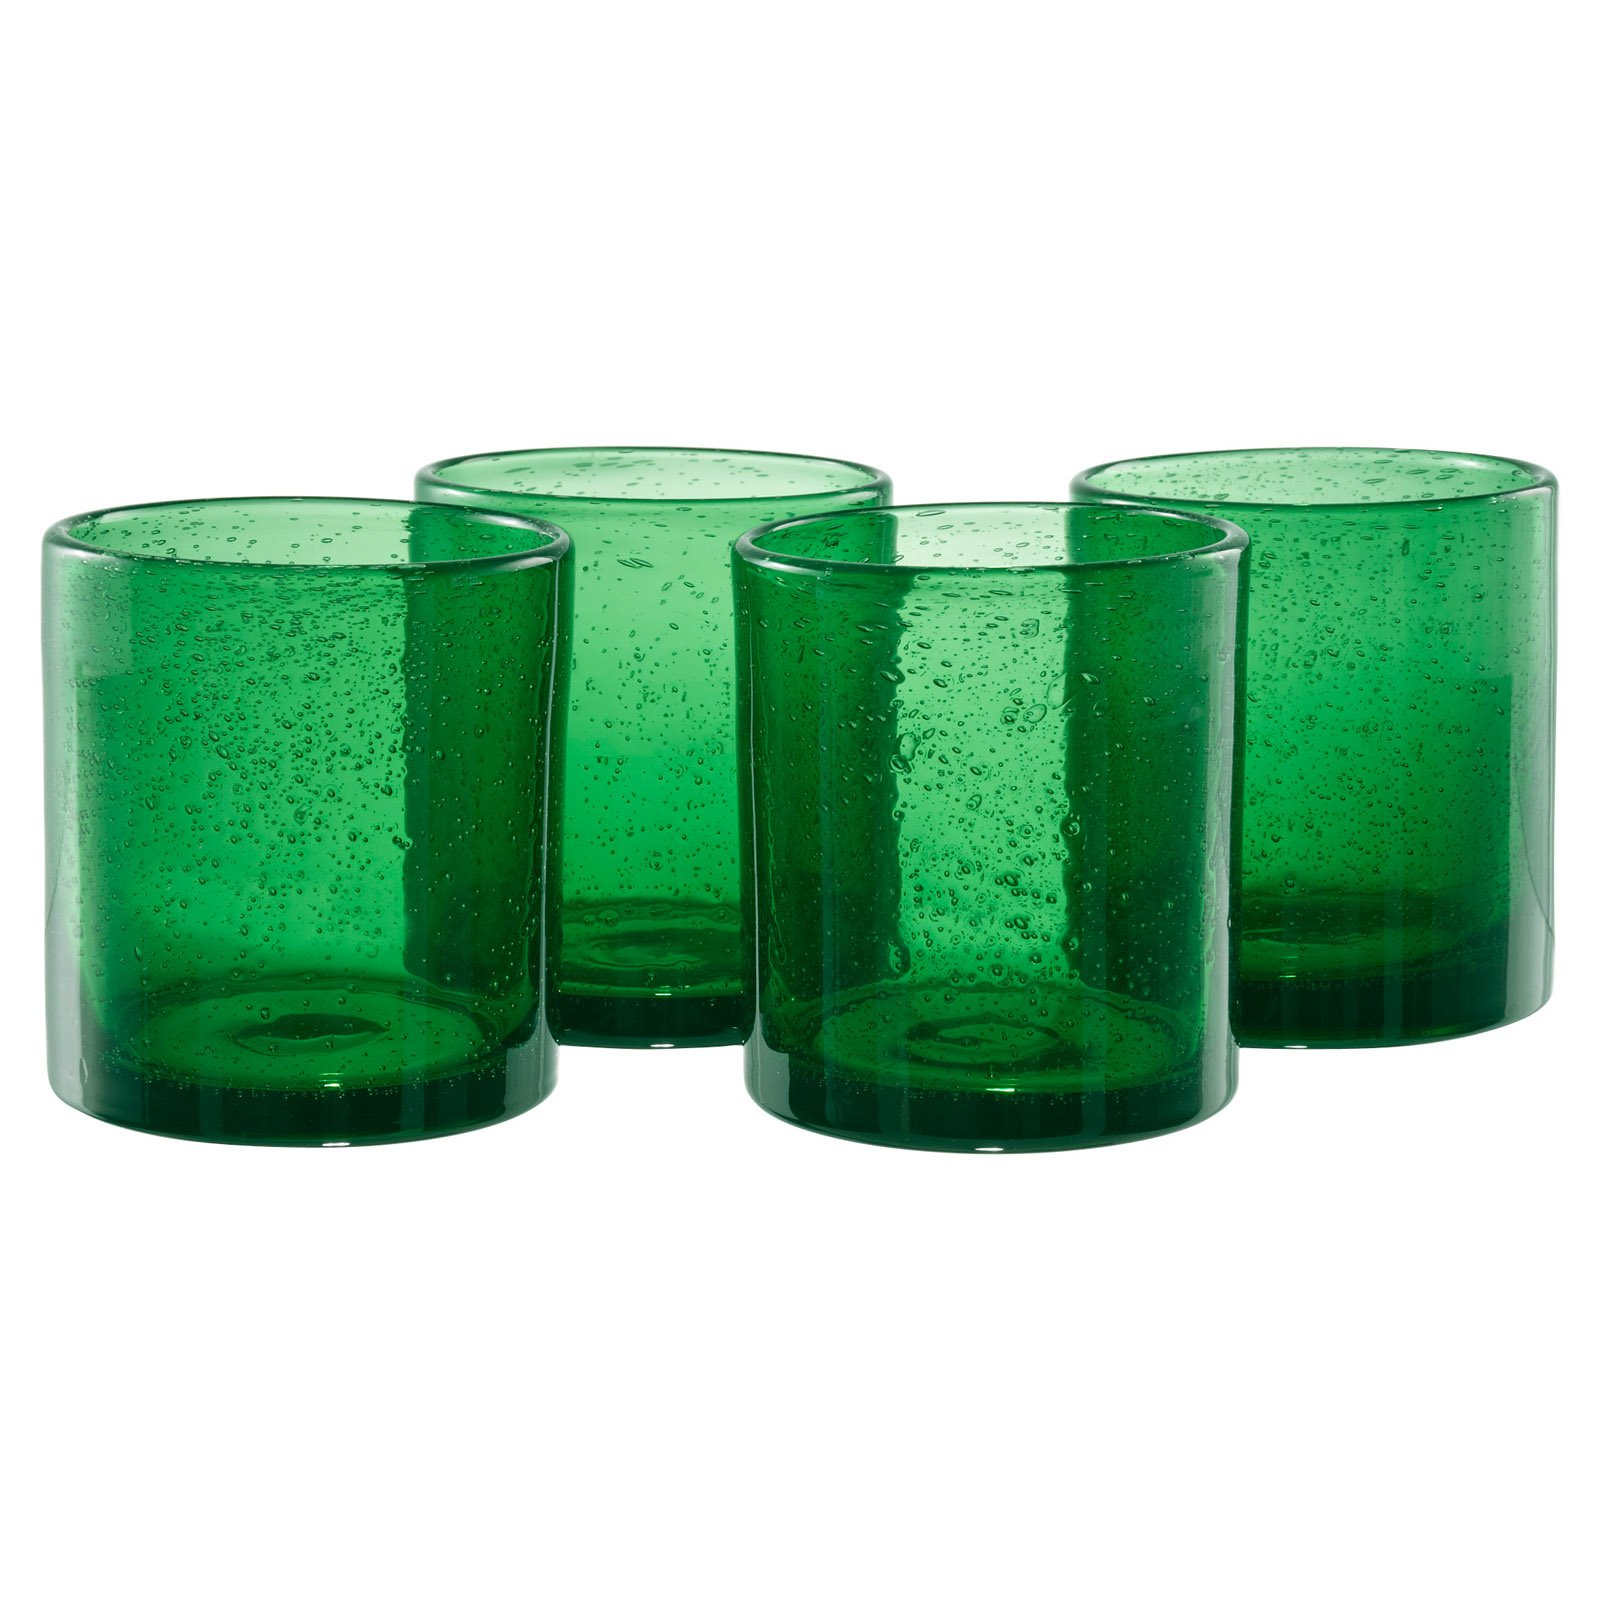 Artland Inc. Iris DOF Glasses - Set of 4